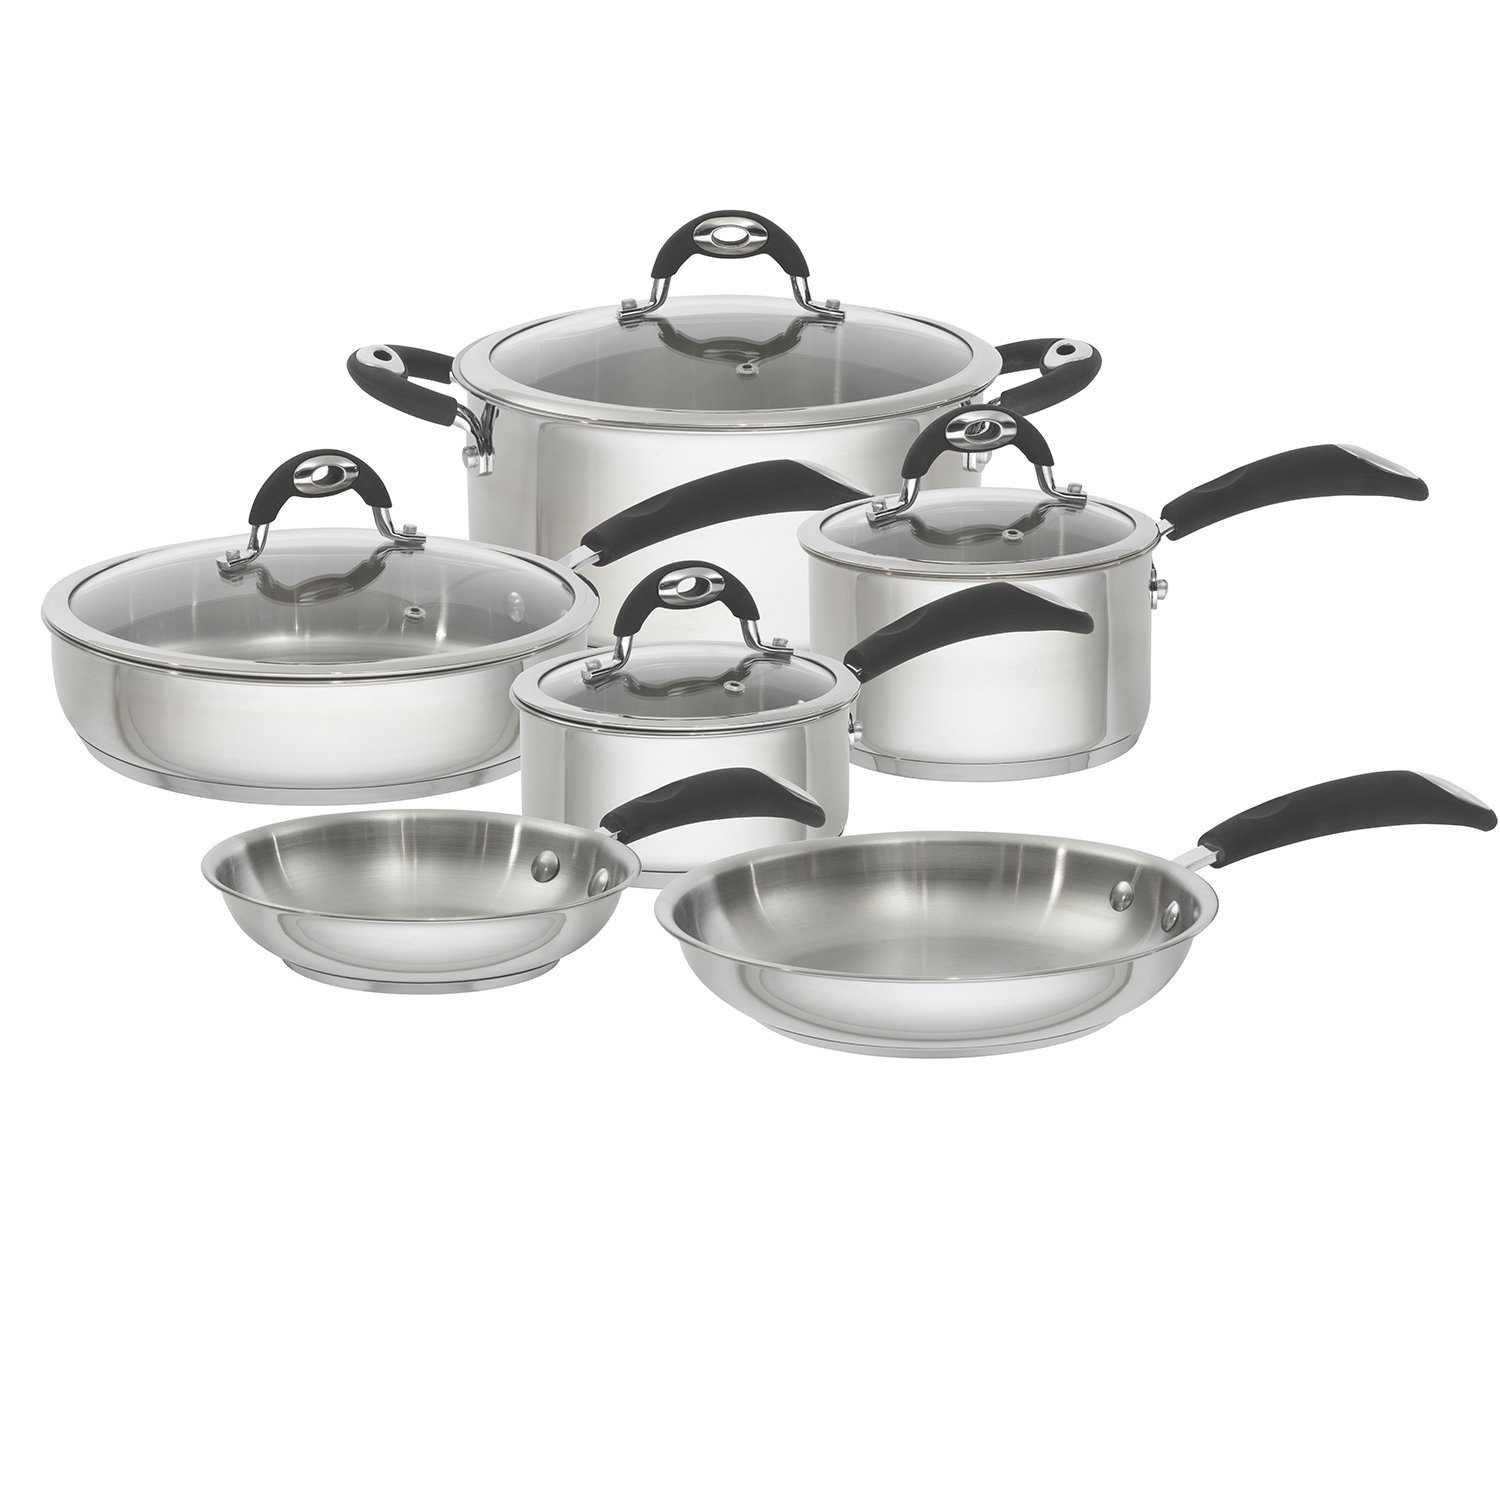 Bialetti Xpert 10 Piece Stainless Steel Nonstick Cookware Set, Silver by